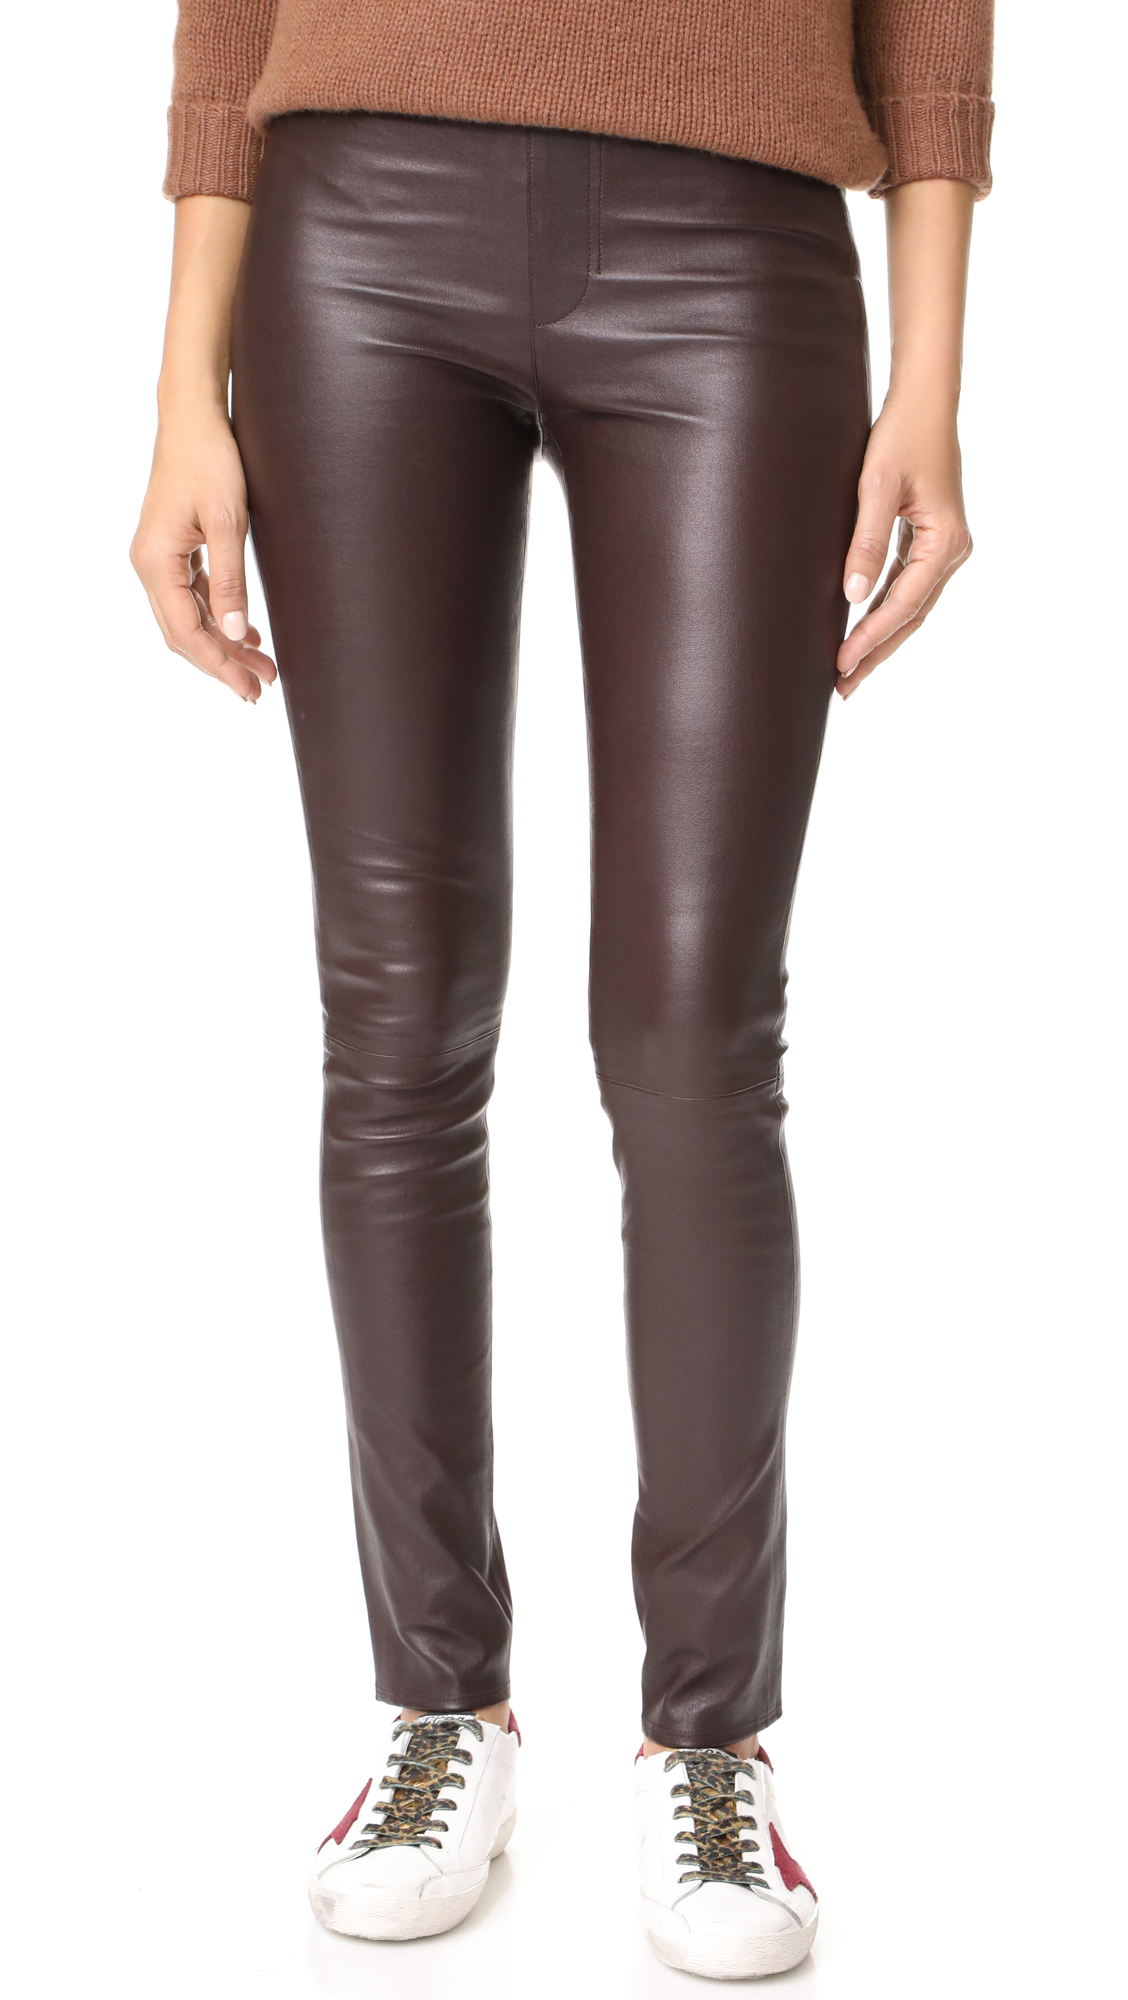 Helmut Lang Leather Leggings - Calla